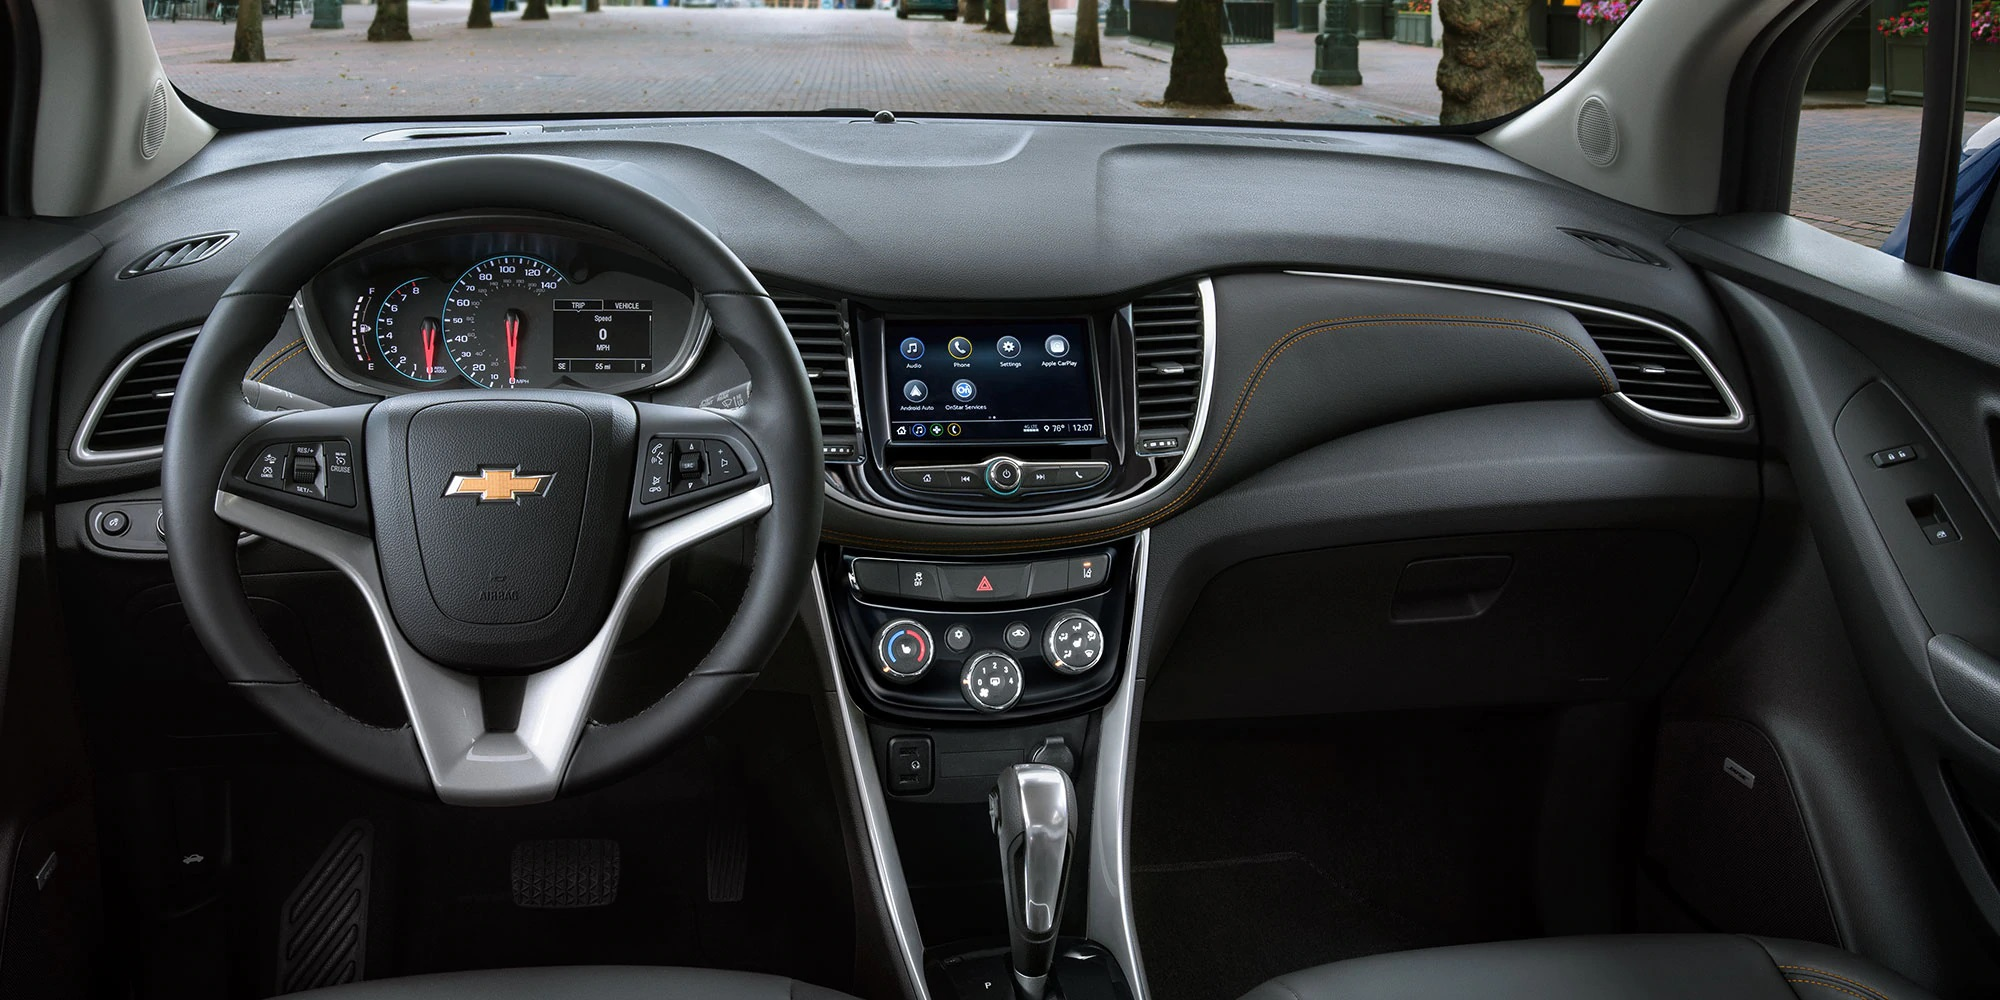 2020 Chevrolet Trax Dashboard